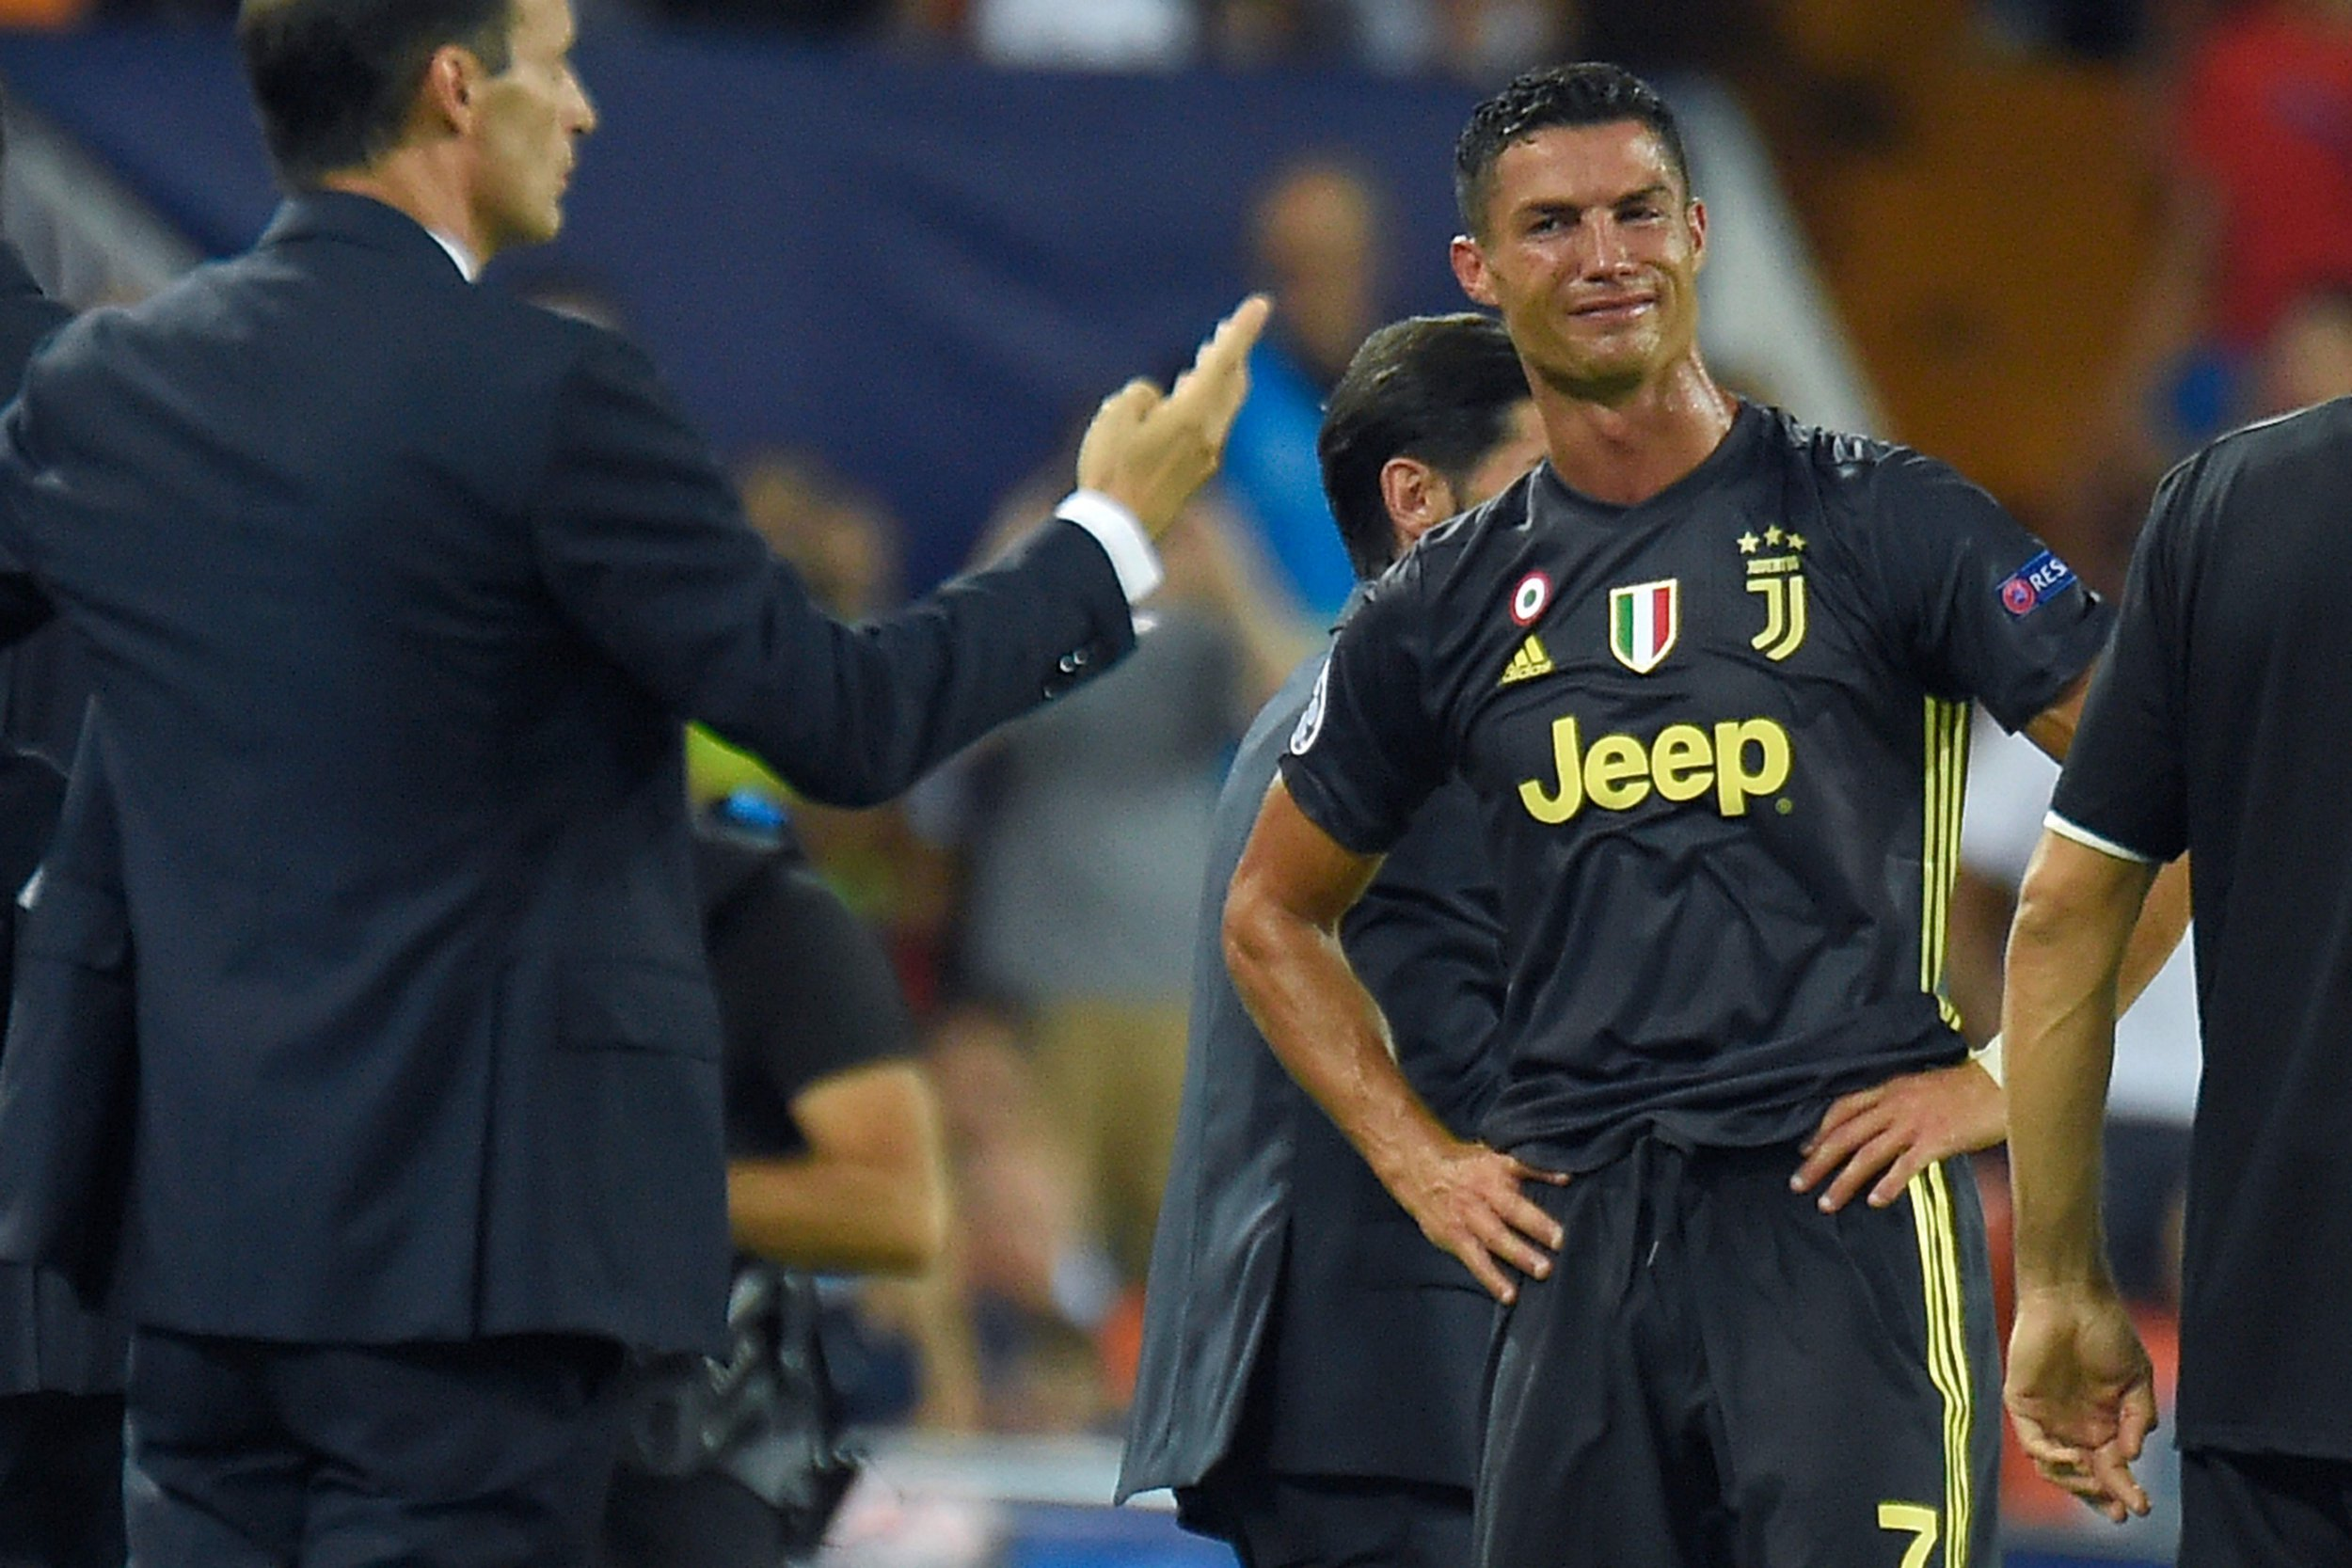 Juventus star Cristiano Ronaldo pleads innocence to Valencia coach after red card